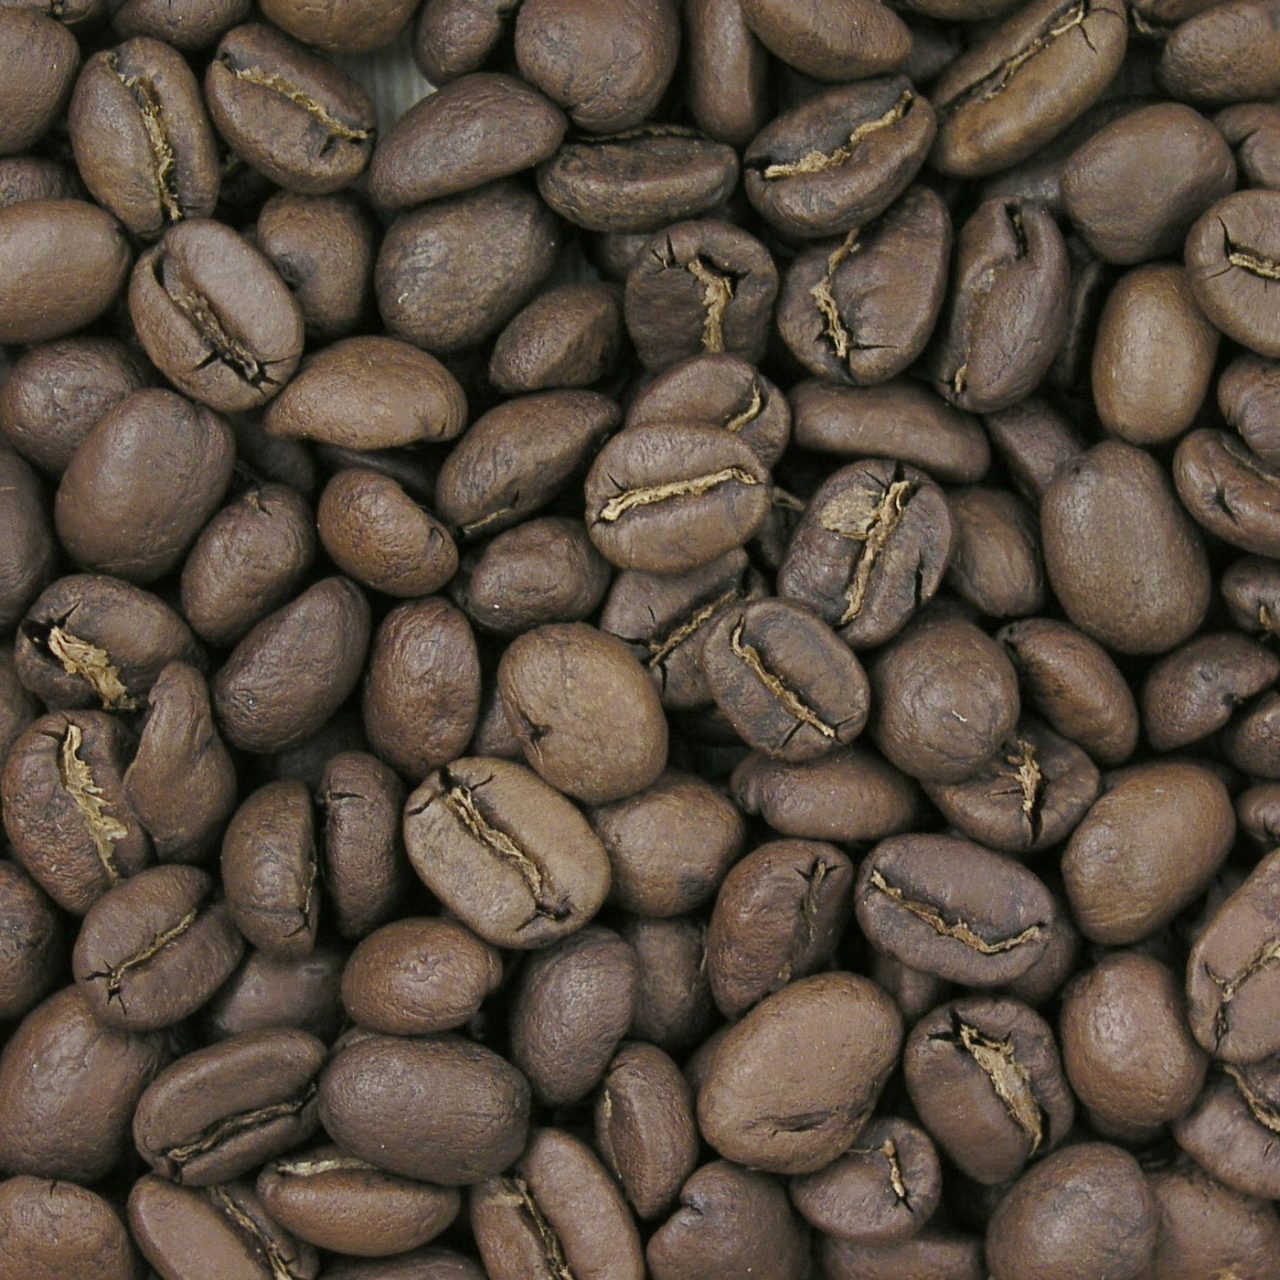 210 °C (410 °F) American Roast Medium light brown, the traditional roast for the Eastern U.S. First crack ending.